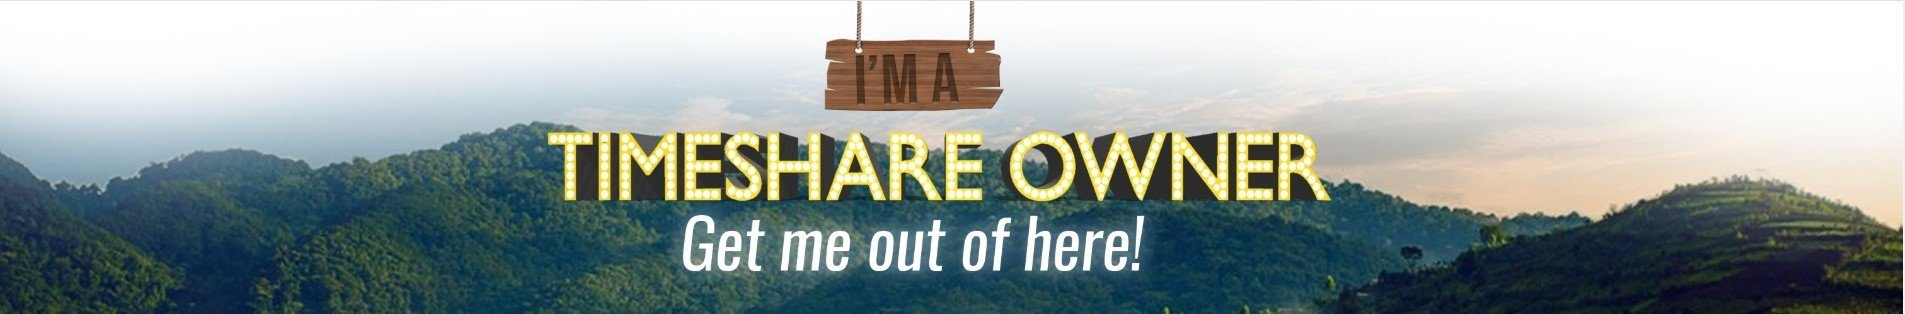 timeshare-owner-get-me-out-of-here